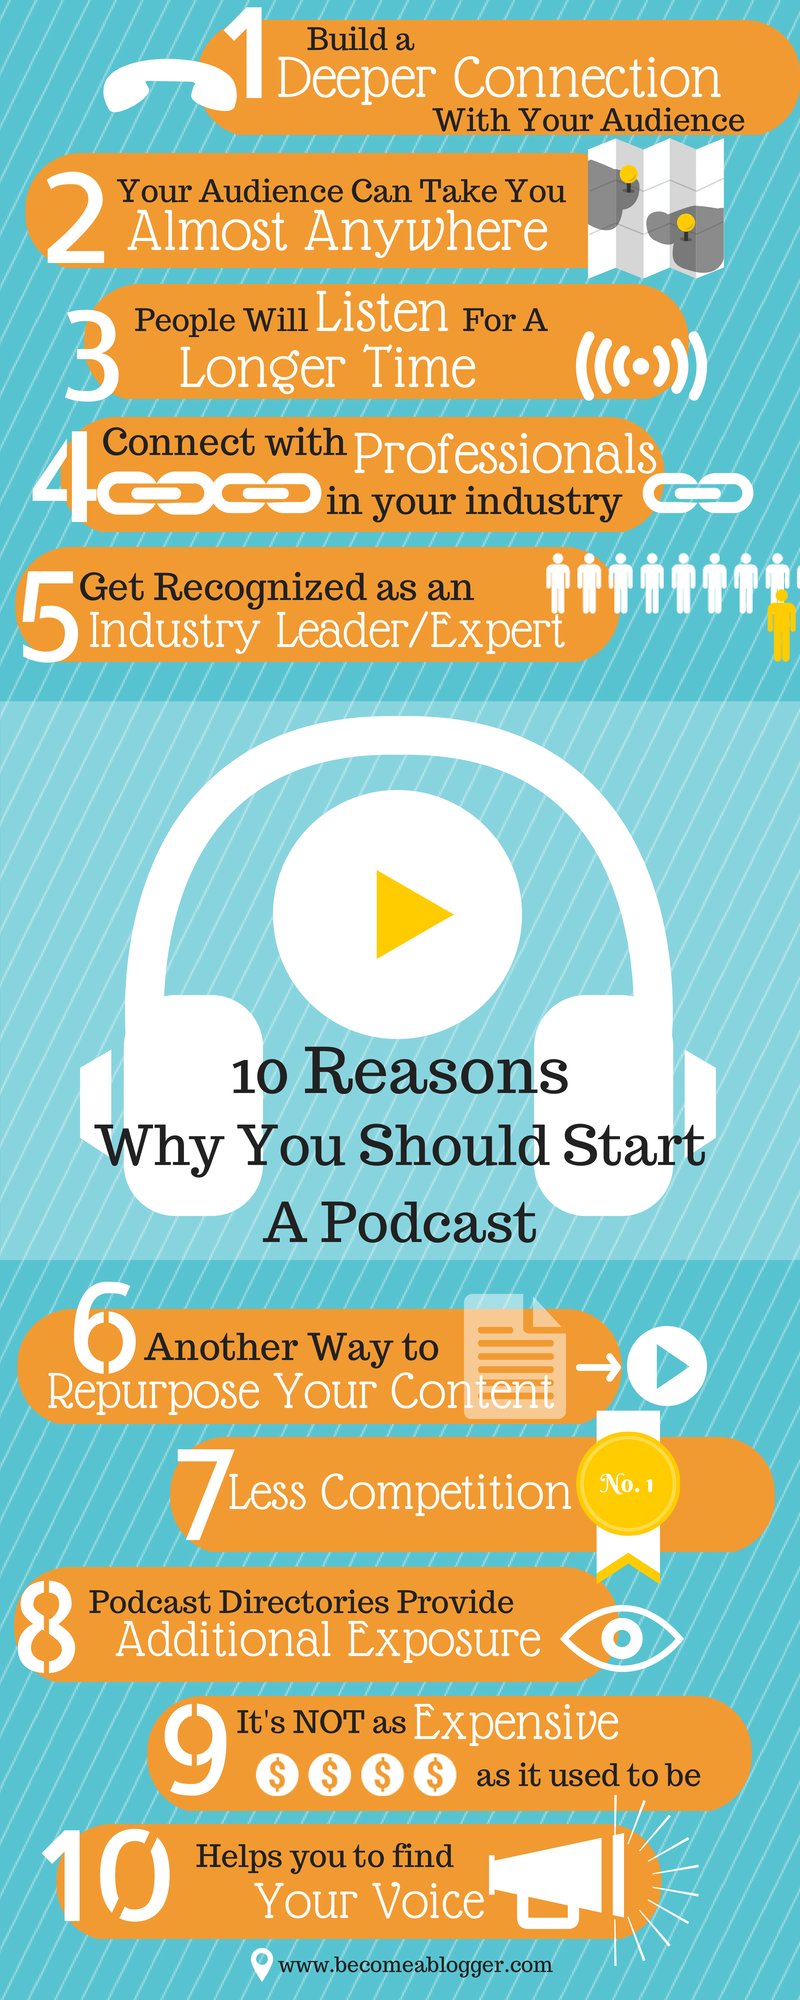 07_07_Why_Podcast_Infographic